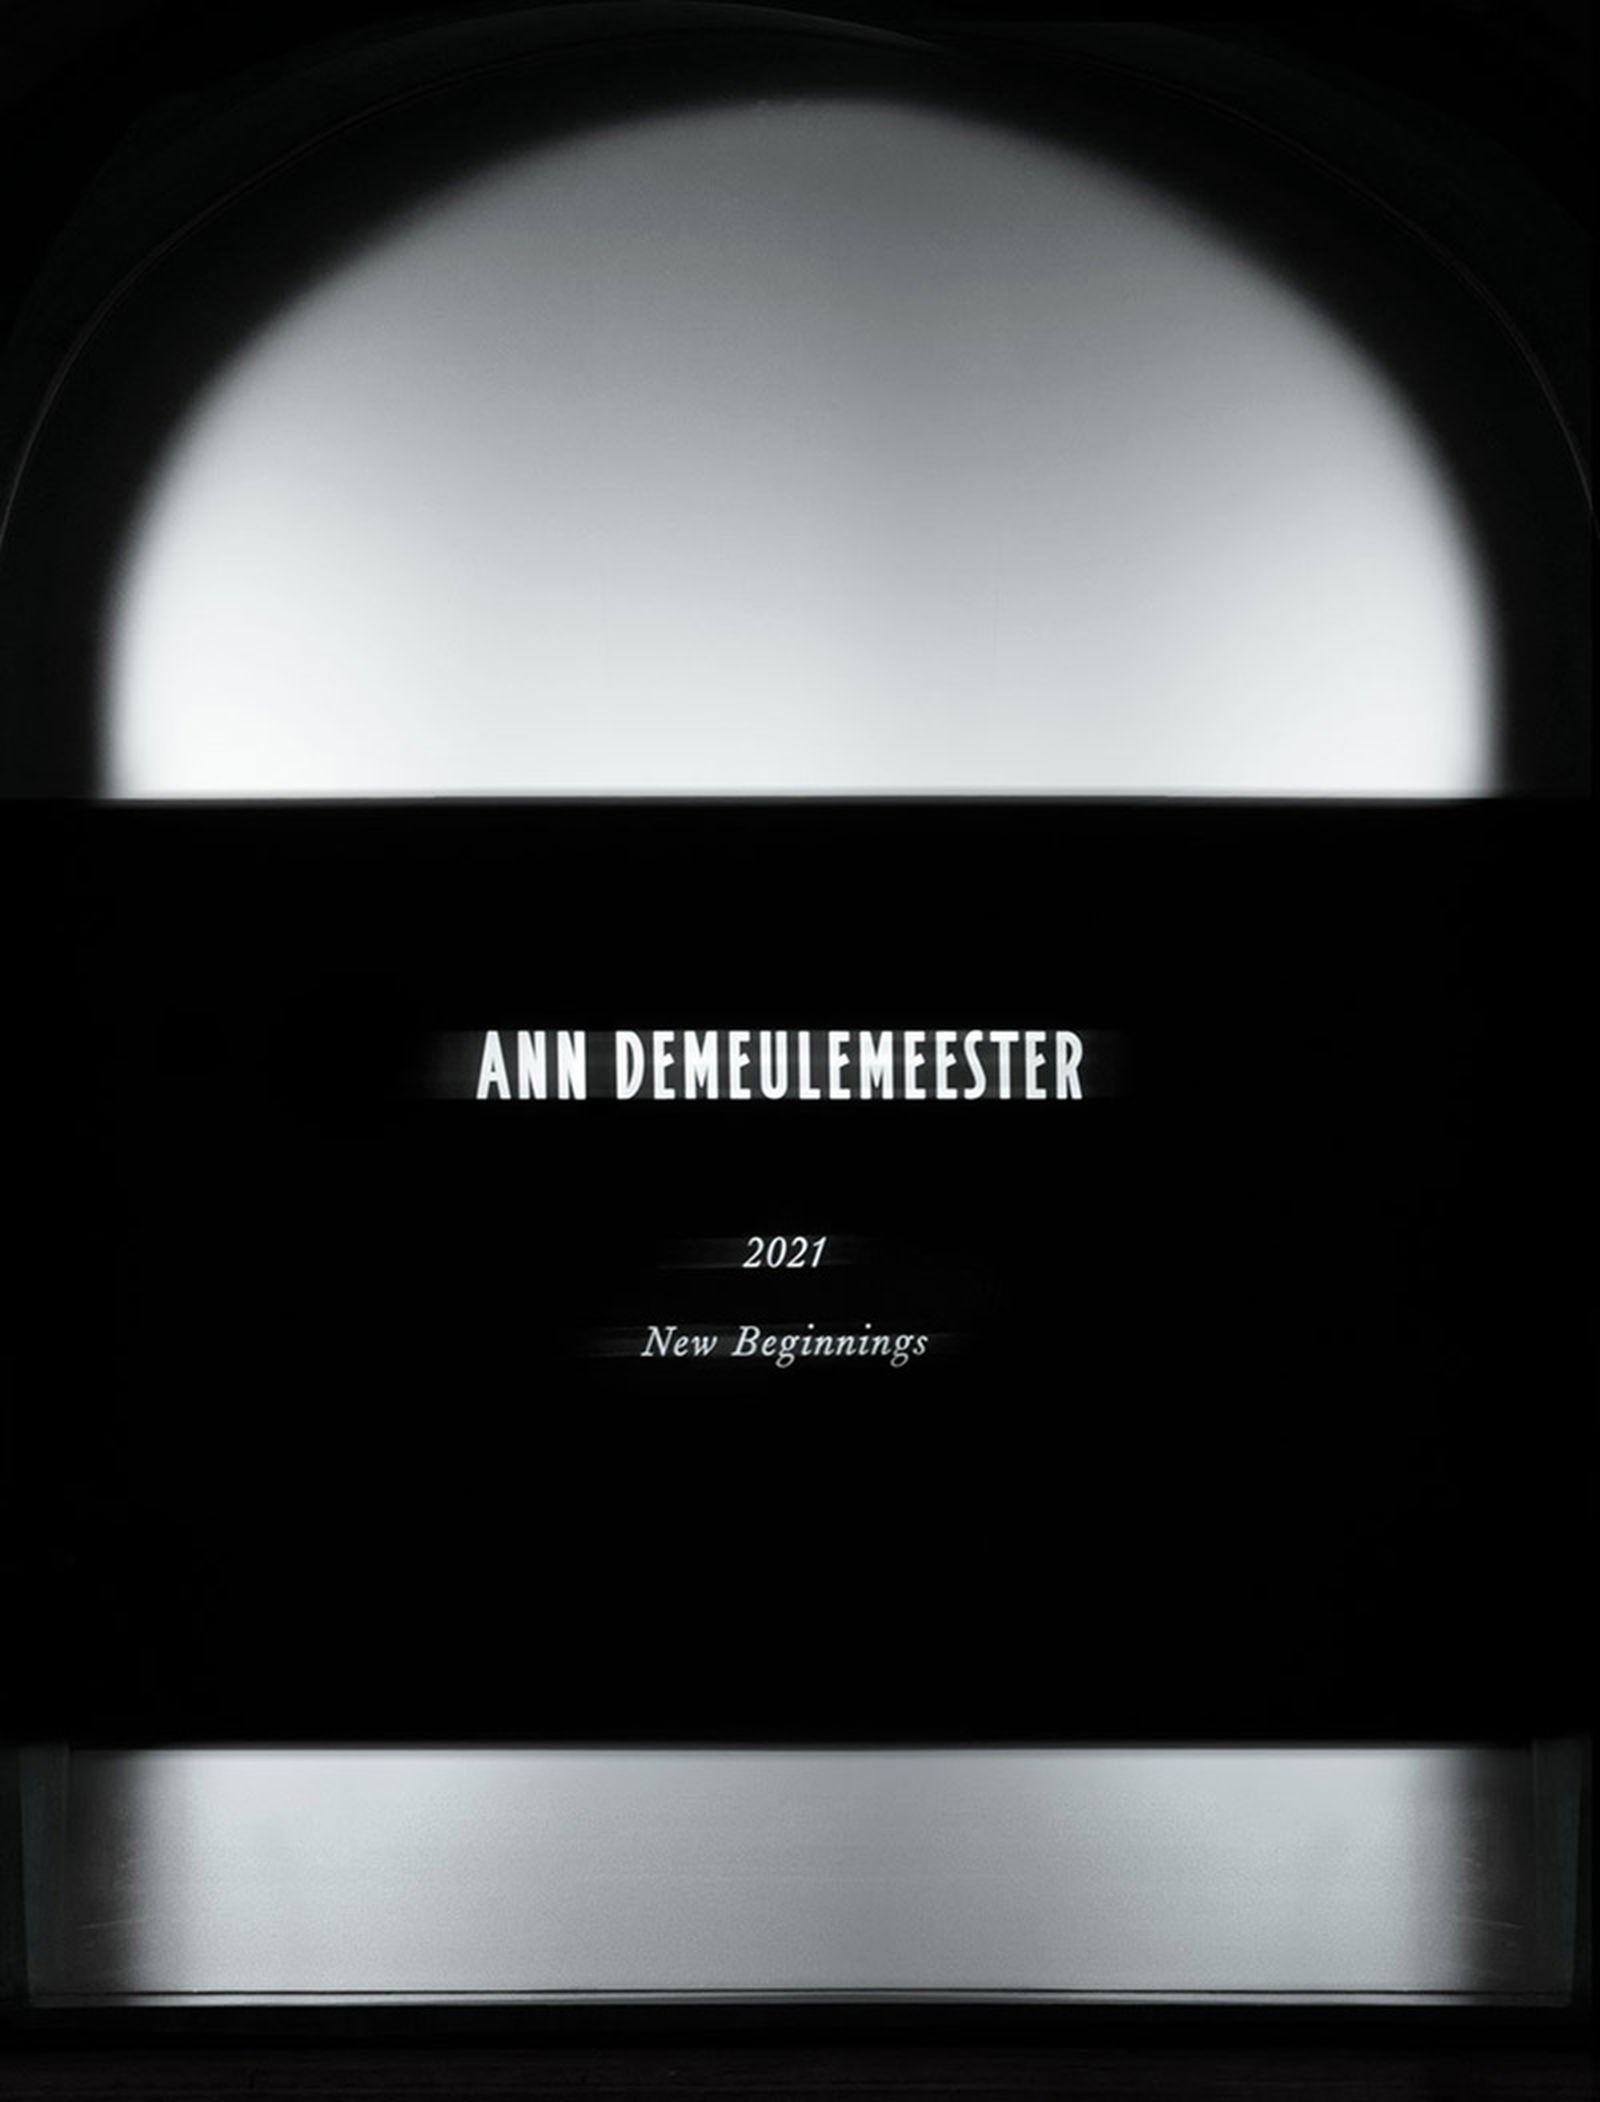 game-changers-best-store-interiors-changed-fashion-ann-demeulemeester-01